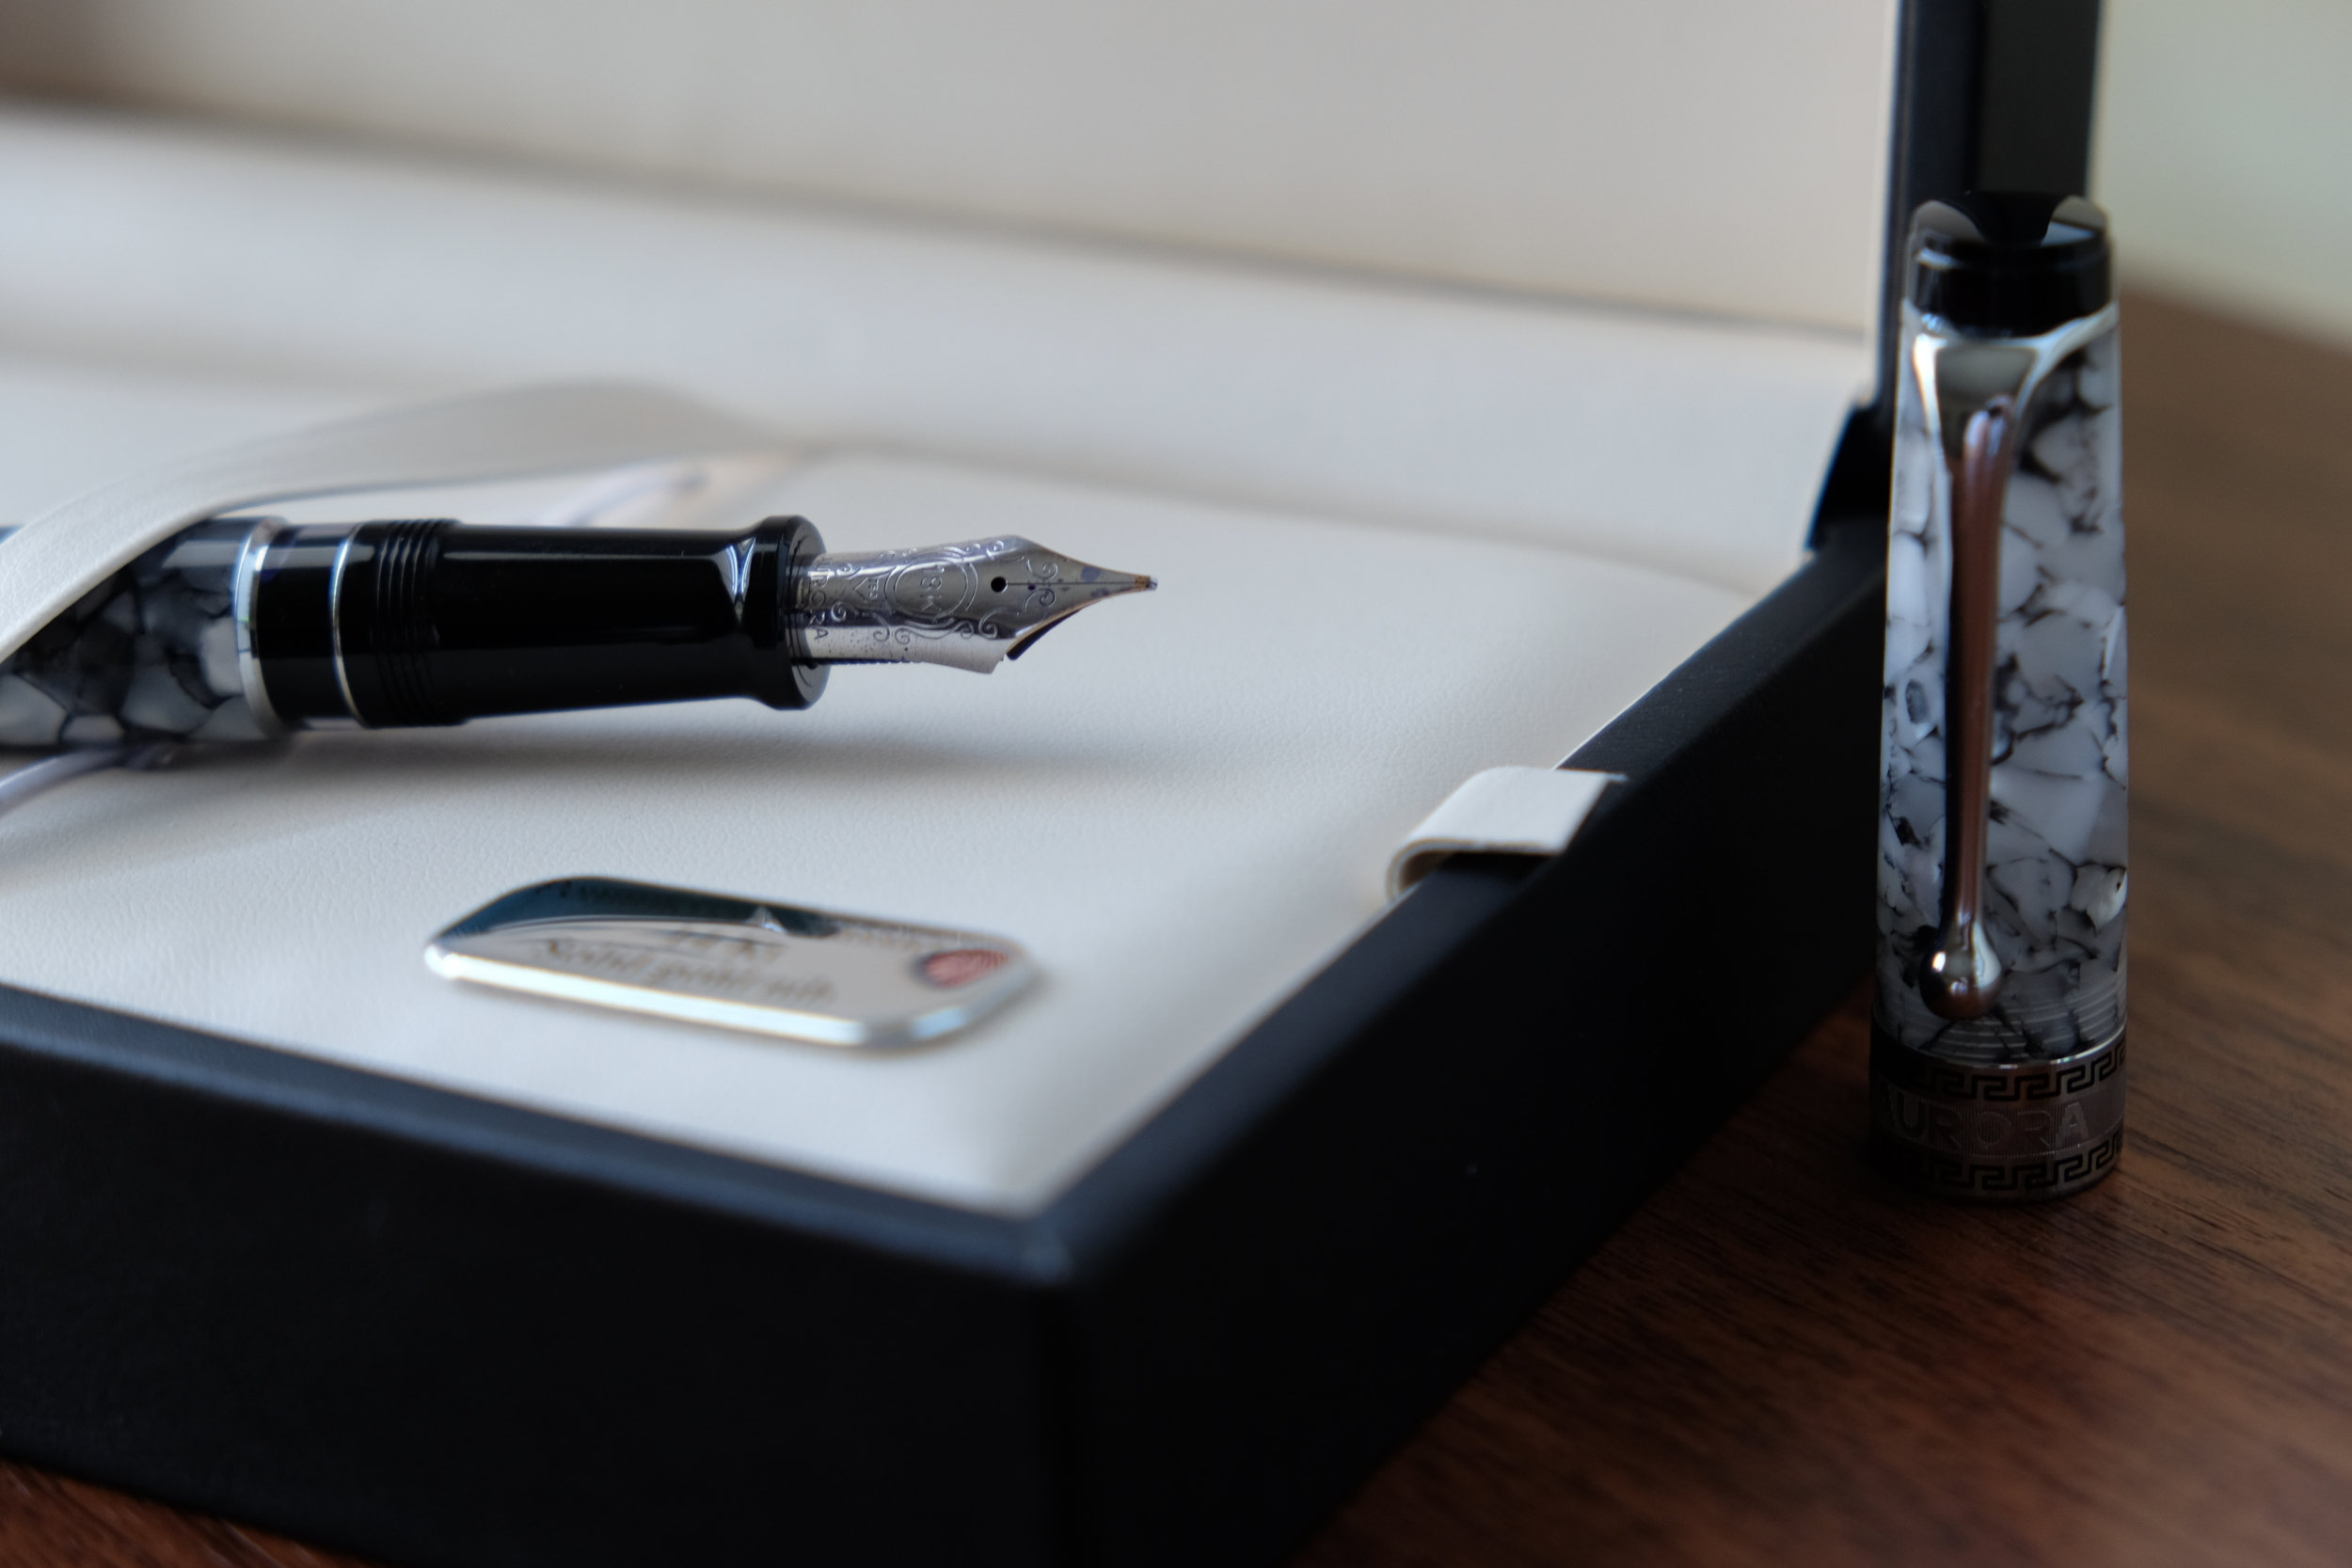 The Aurora Optima features a 18k nib. This one started life as a medium but has been ground to a cursive italic.